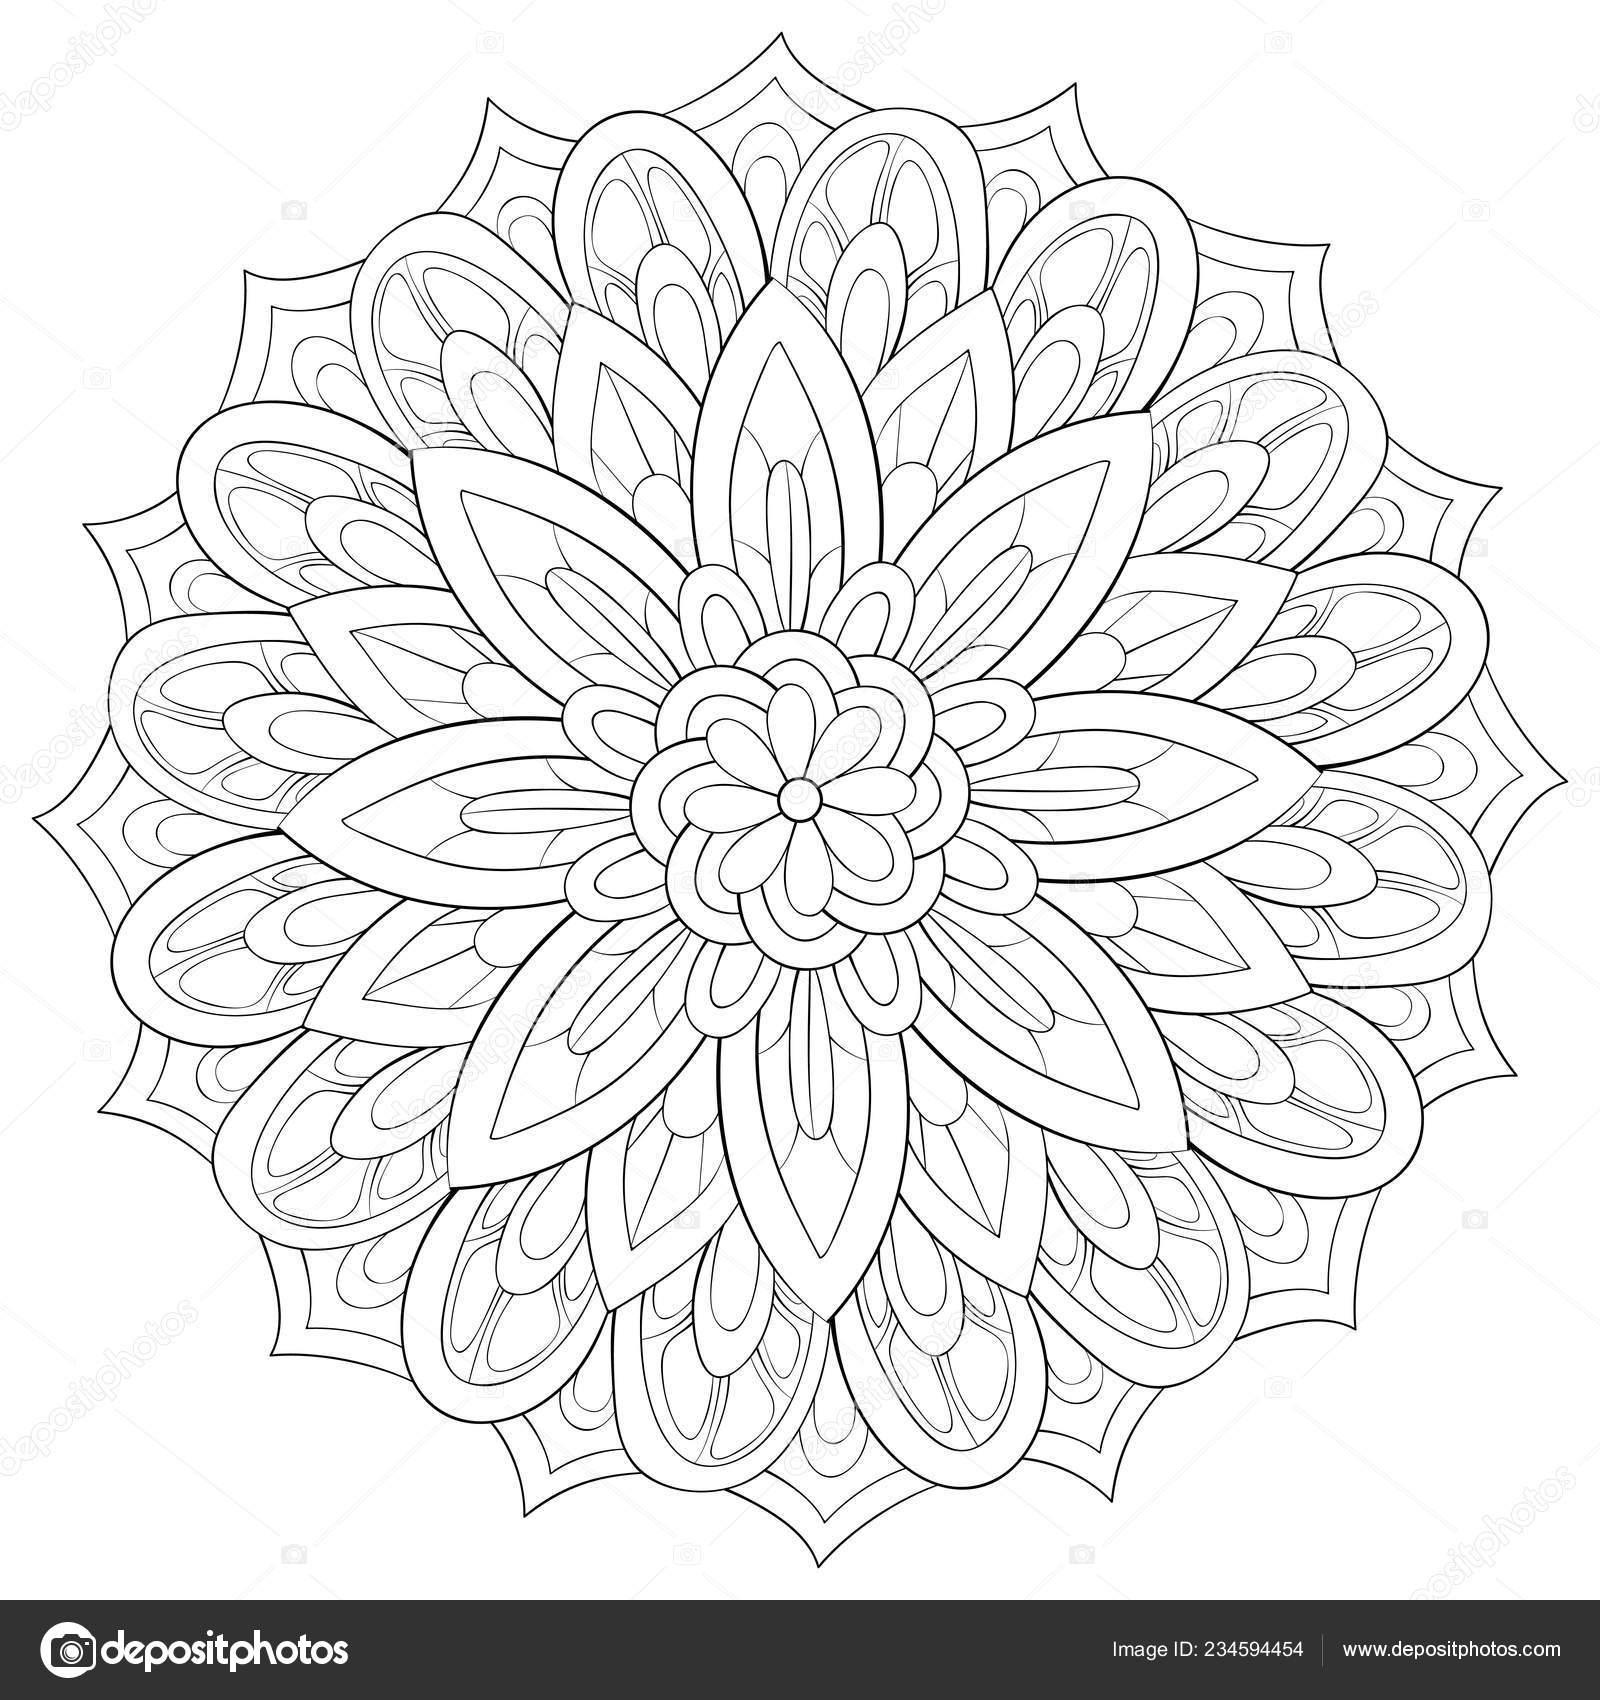 Zen Mandala Image Adults Coloring Book Page Relaxing Activity Zen Vector Image By C Nonuzza Vector Stock 234594454